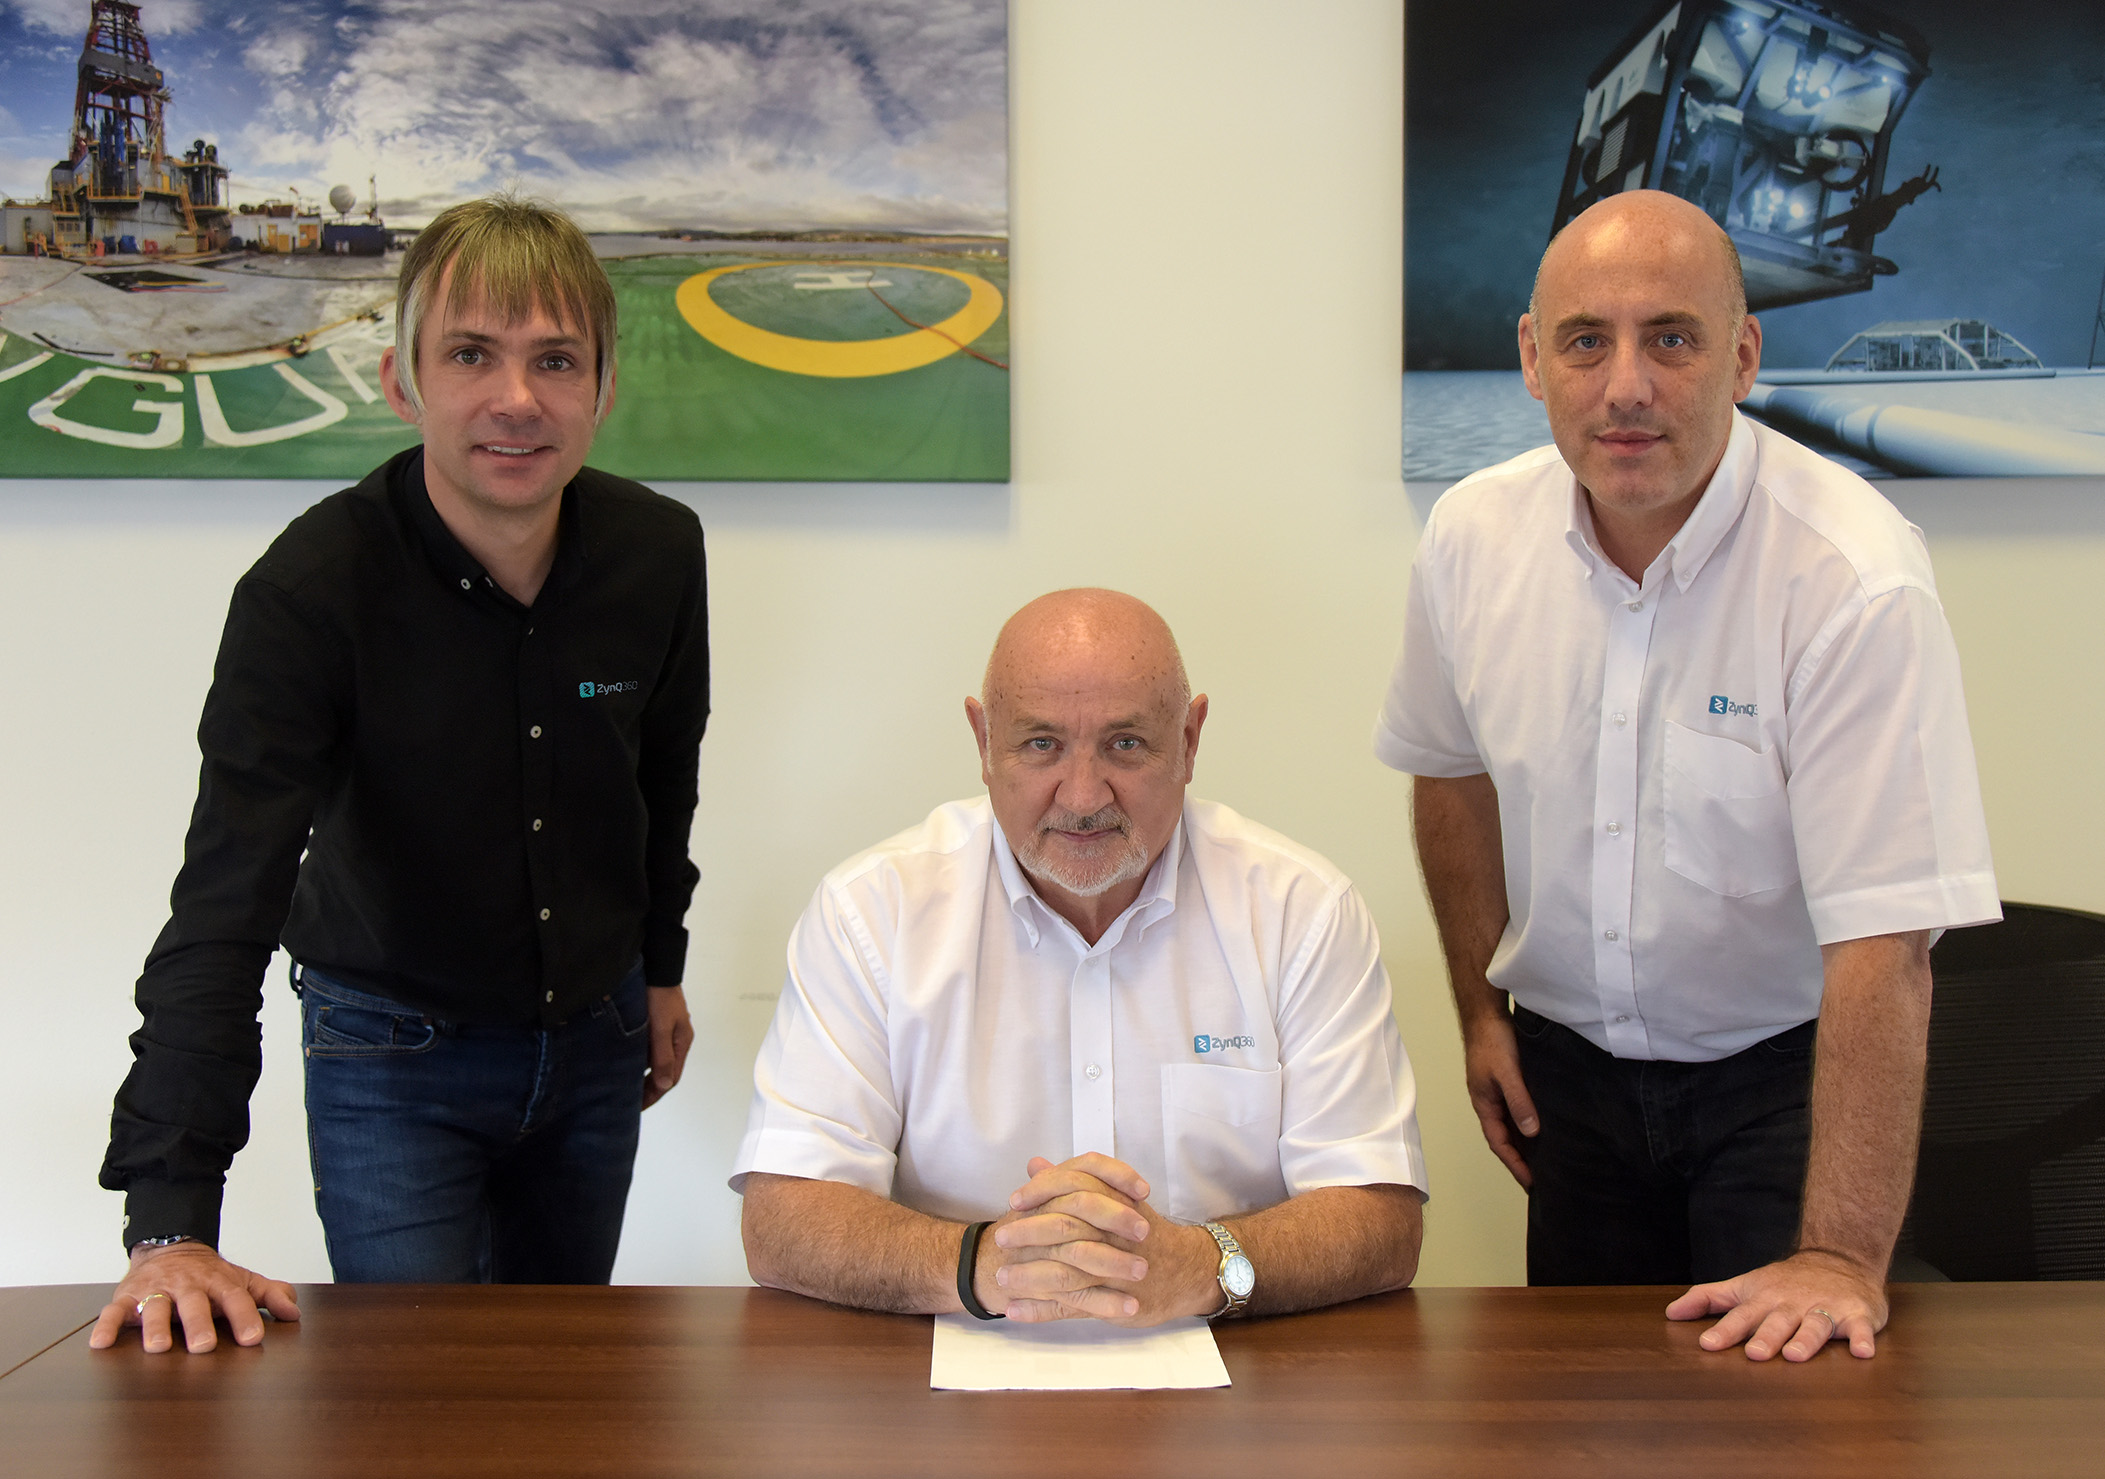 Image of the three ZynQ 360 directors. From left; Aly Gray - Operations Director, Brian Dillon - Managing Director, Brian Milne - Technical Director